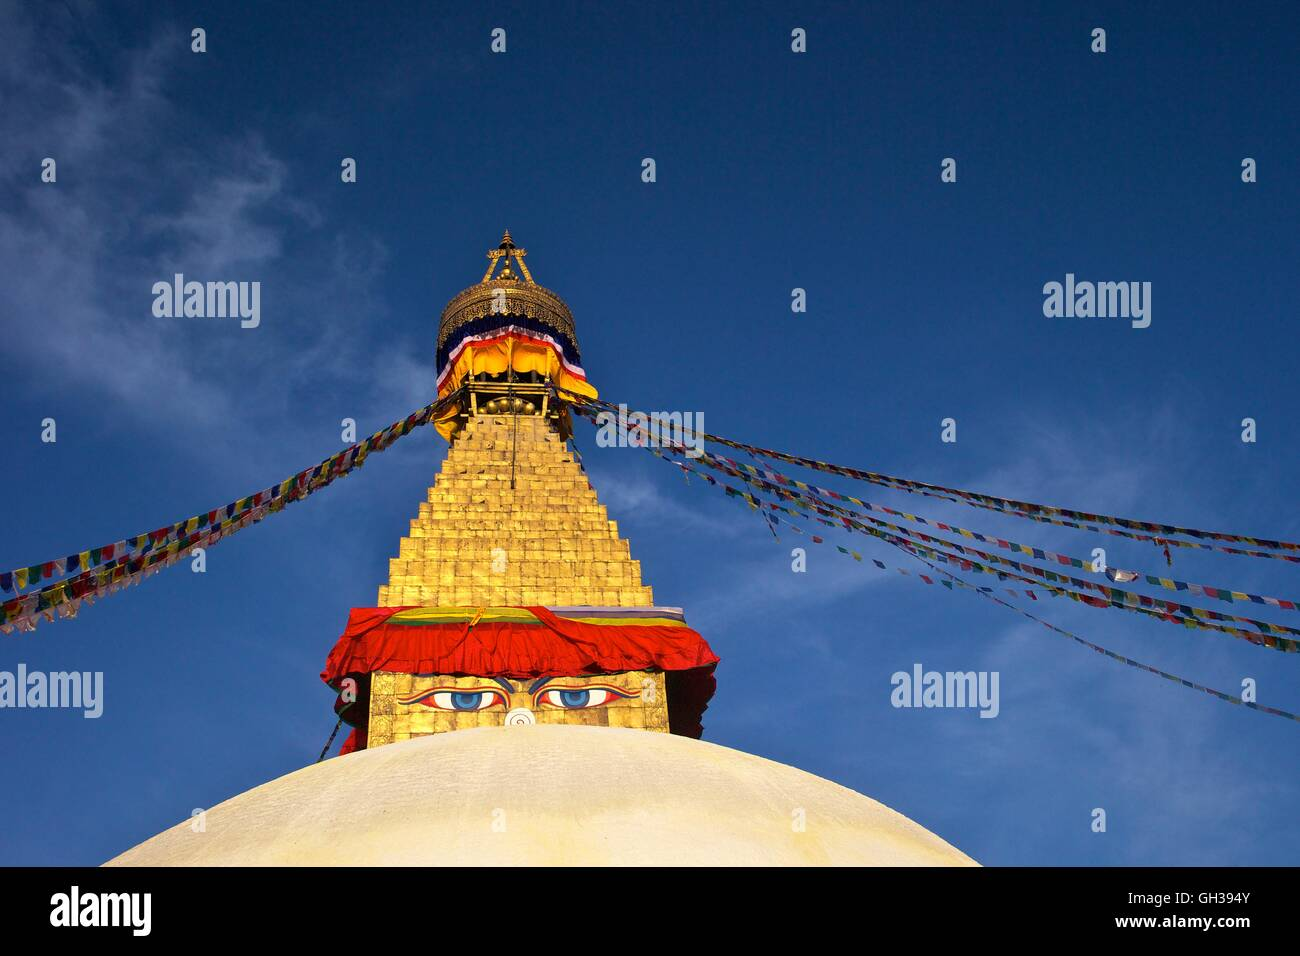 All seeing eyes of the Buddha, Boudhanath Stupa, Kathmandu, Nepal, Asia - Stock Image